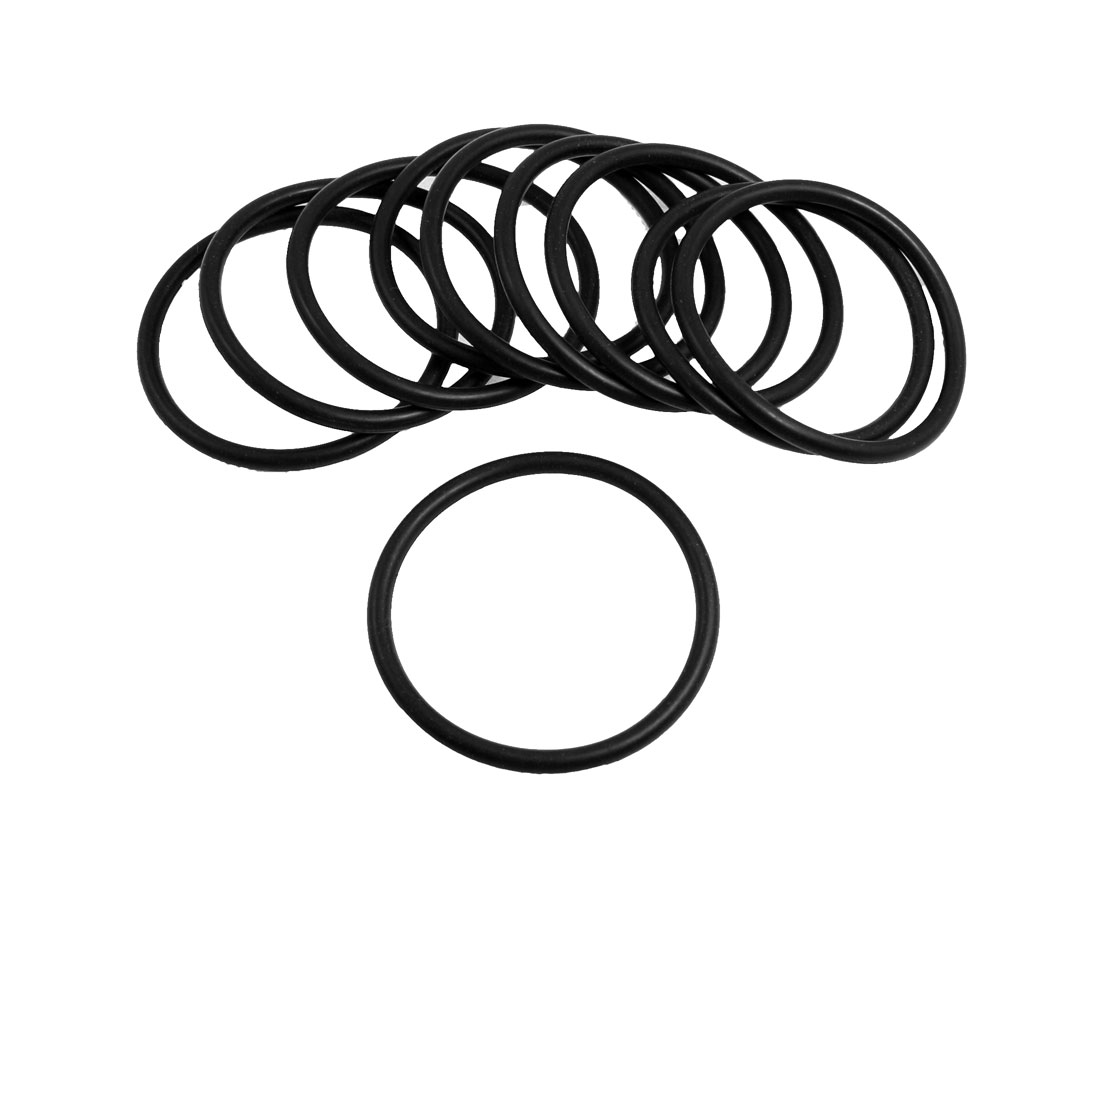 5mm x 72mm Black Nitrile Rubber Sealing O Ring Seal Washer Grommets 10 Pcs